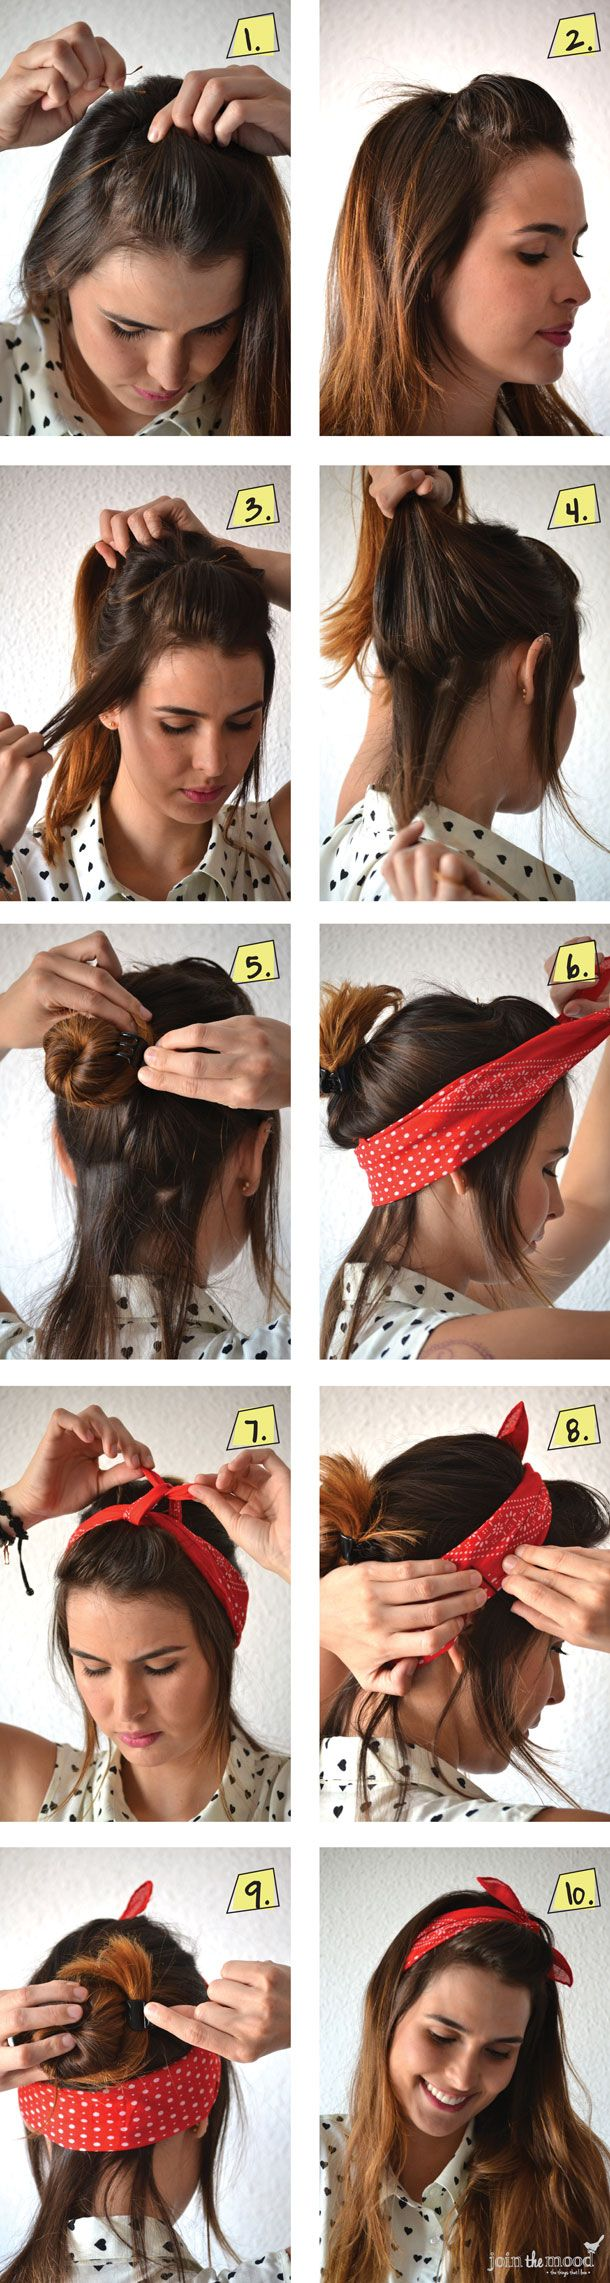 Join the Mood: HAIRSTYLE WITH BANDANA PART 1/ PEINADO CON PAÑOLETA PARTE 1